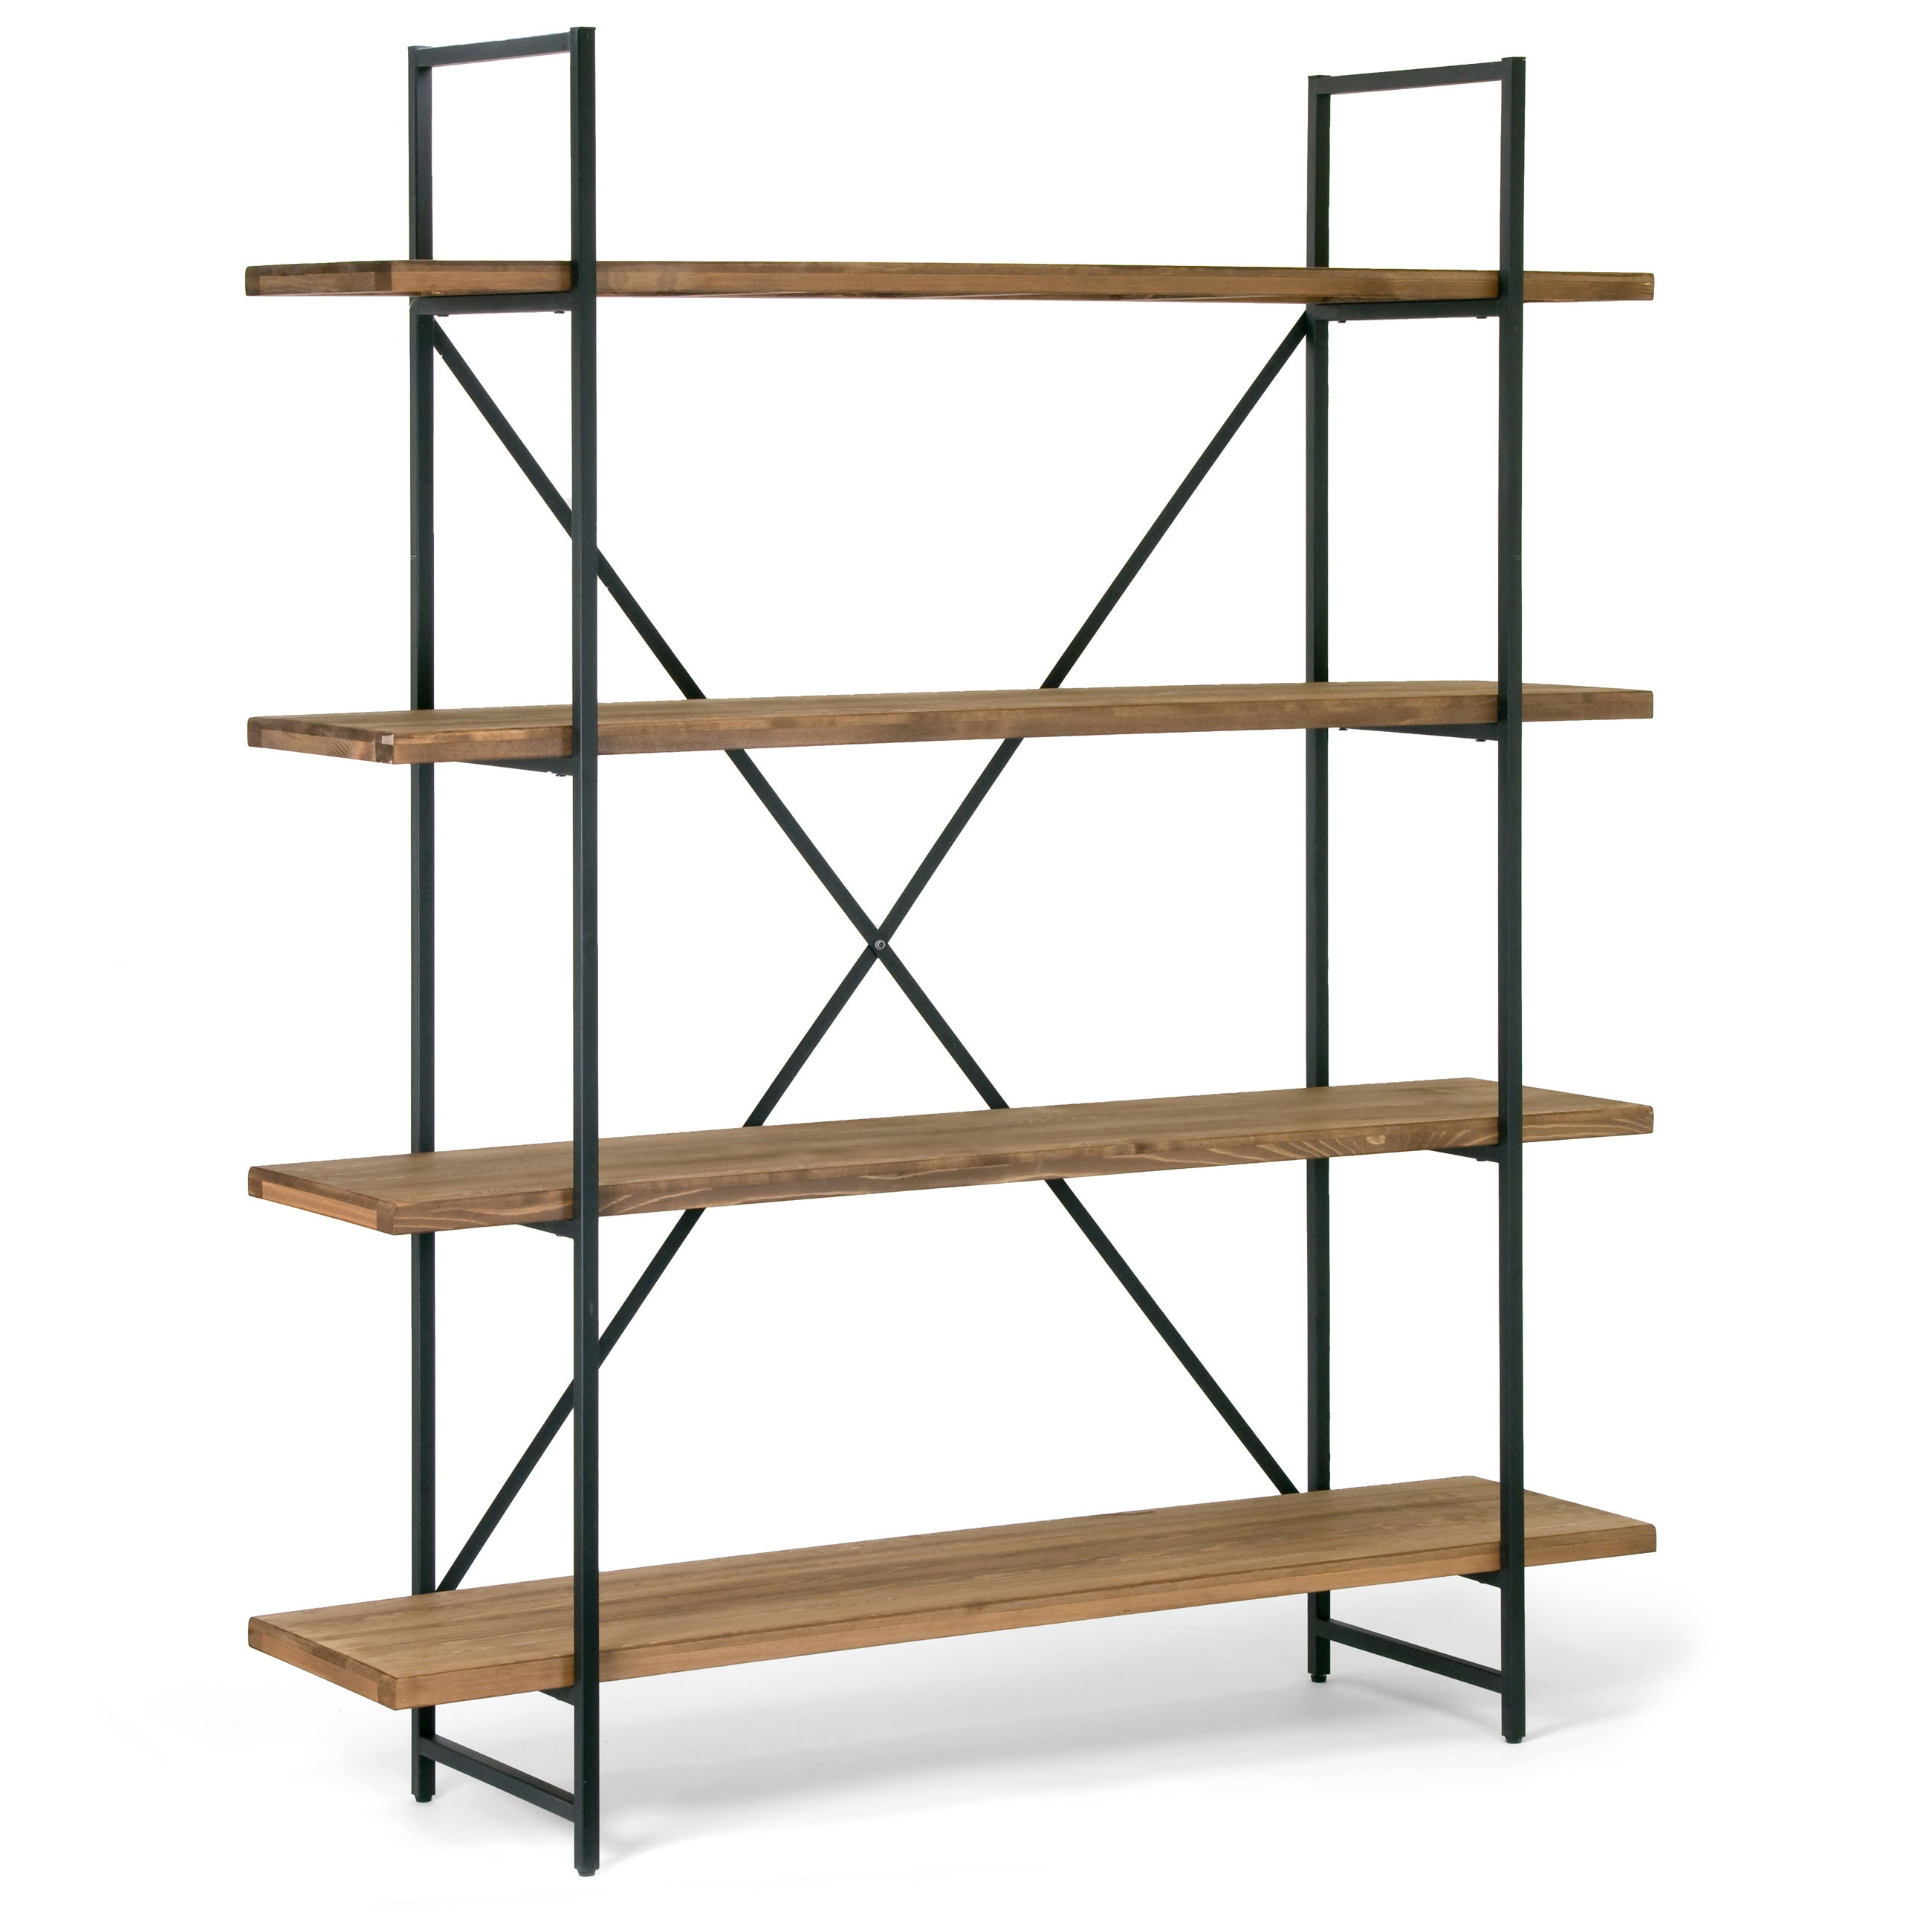 Buy Etagere Bookshelves & Bookcases Online At Overstock For Most Recent Macon Etagere Bookcases (View 3 of 20)